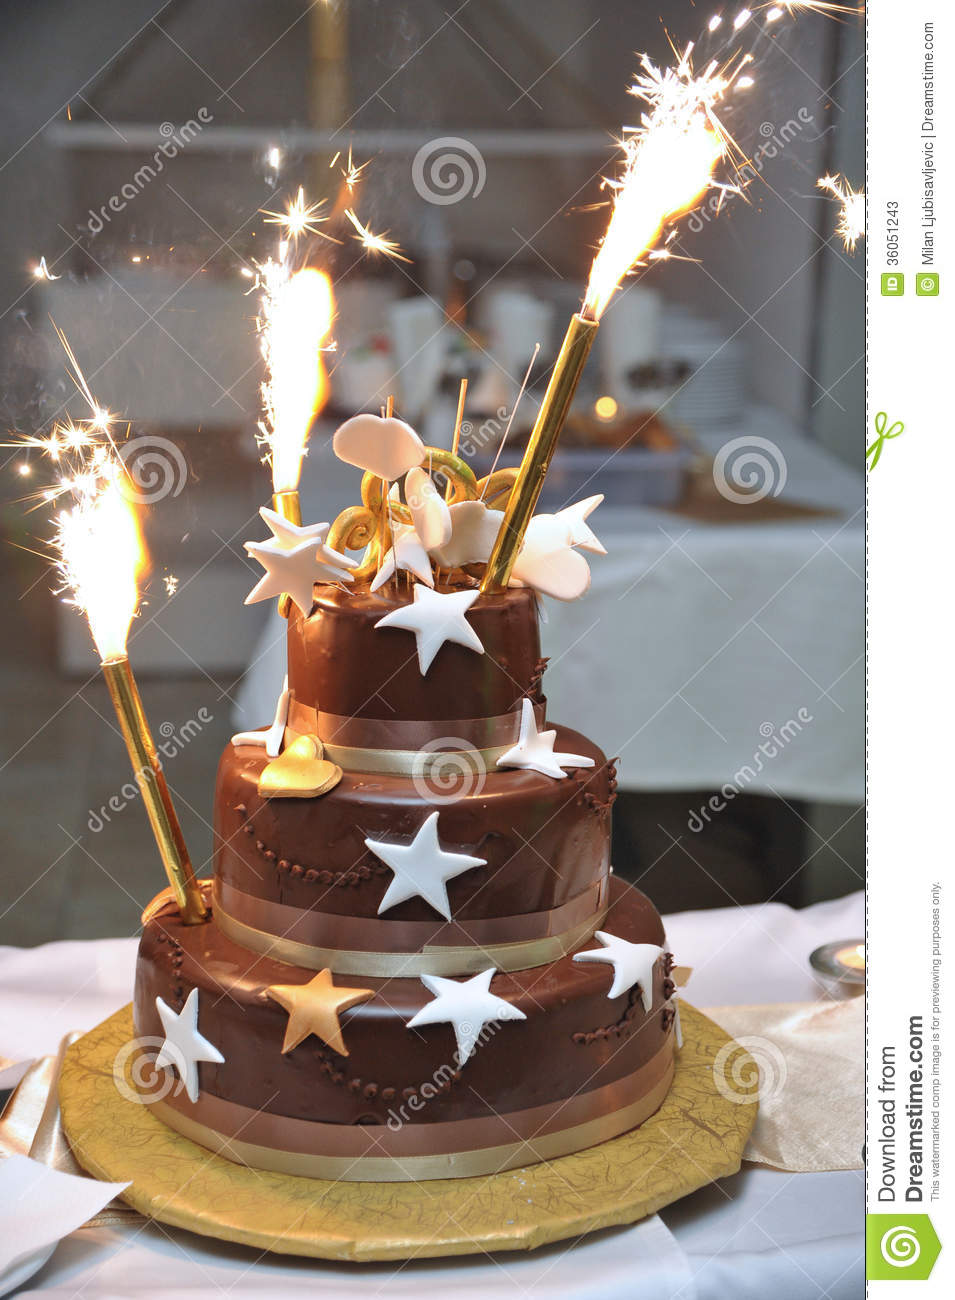 Superb Celebration Cake Stock Image Image Of Fireworks Tasty 36051243 Funny Birthday Cards Online Alyptdamsfinfo